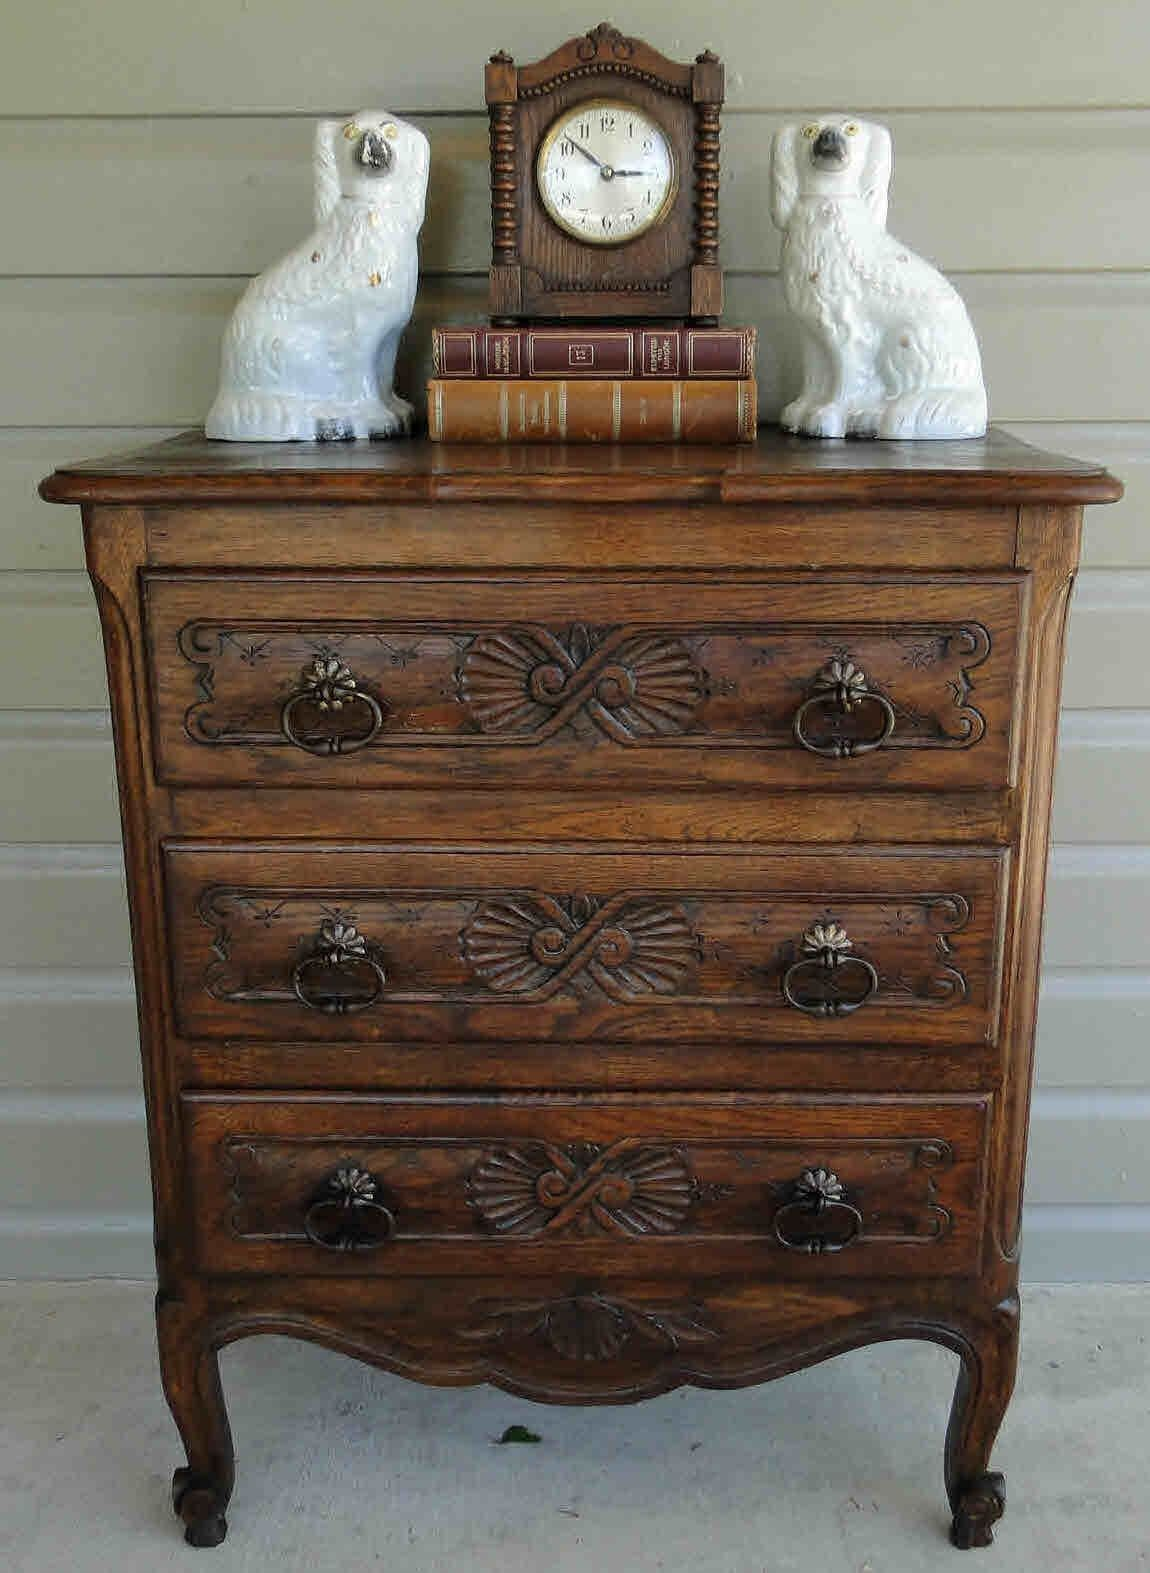 Antique French Country Chest of Drawers, Bureau with Scalloped Apron and Old Charm